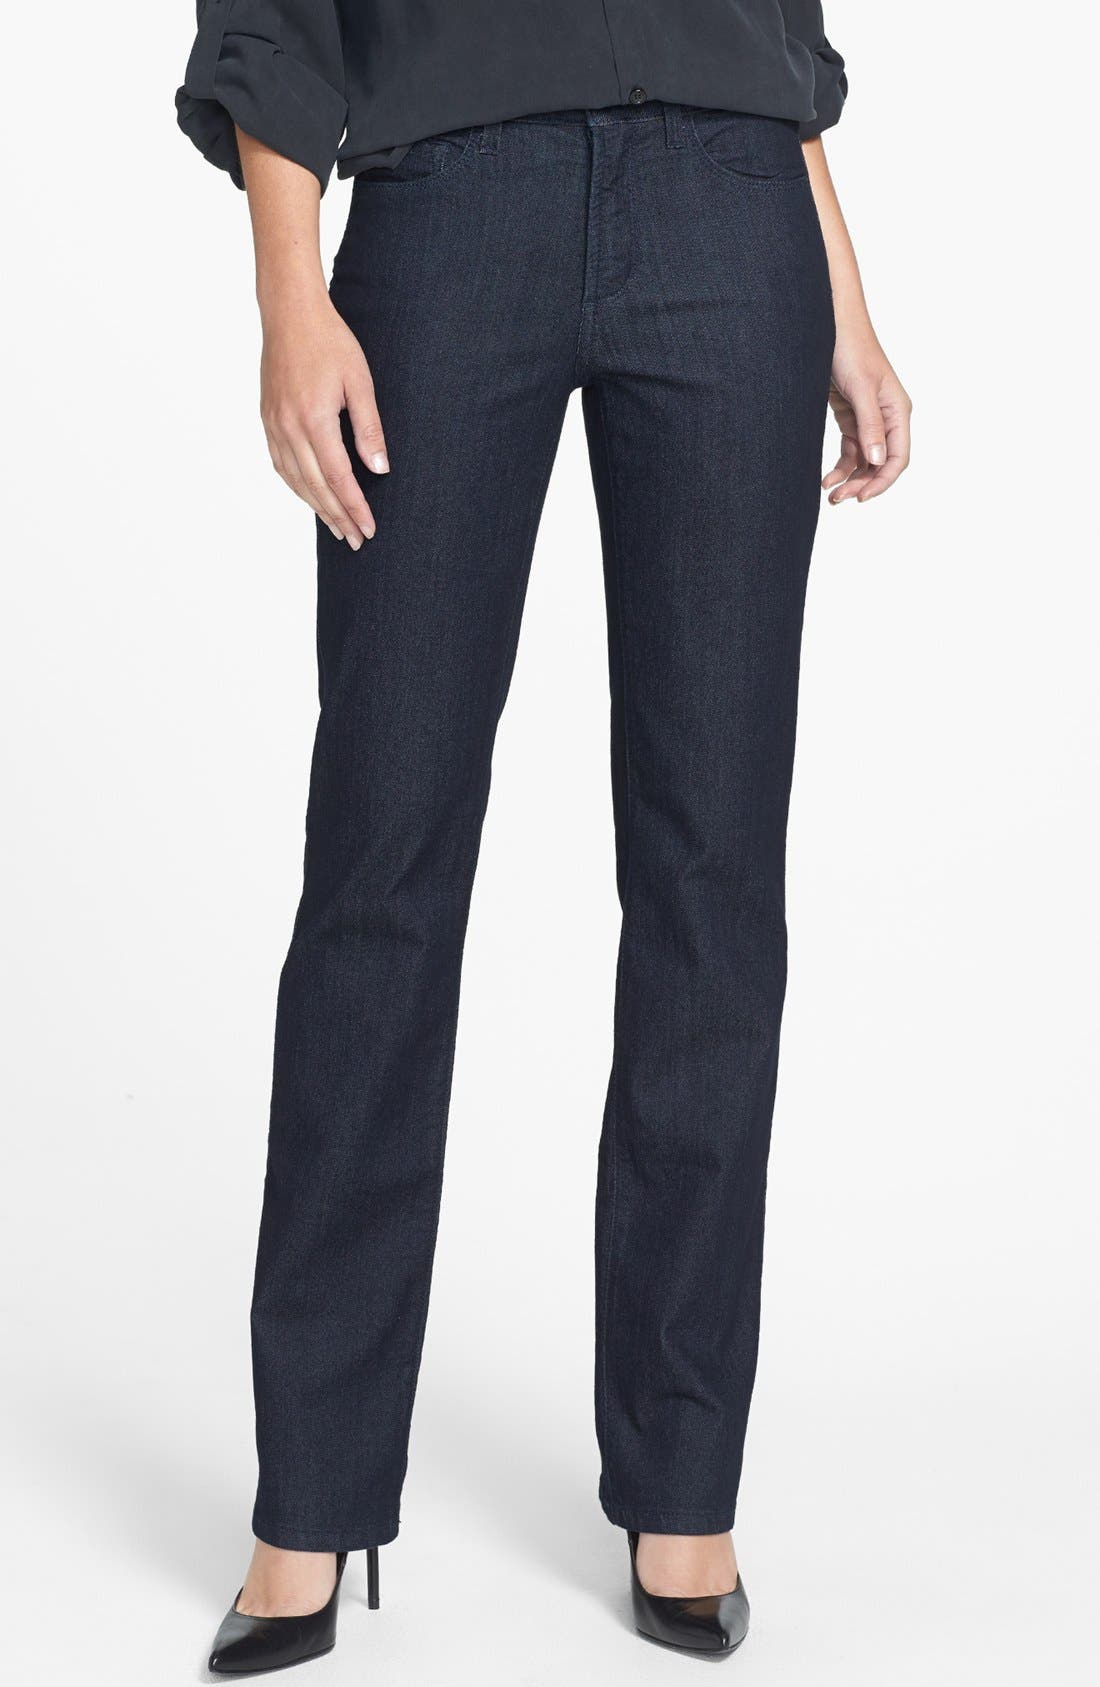 Main Image - NYDJ 'Marilyn' Embellished Pocket Stretch Straight Leg Jeans